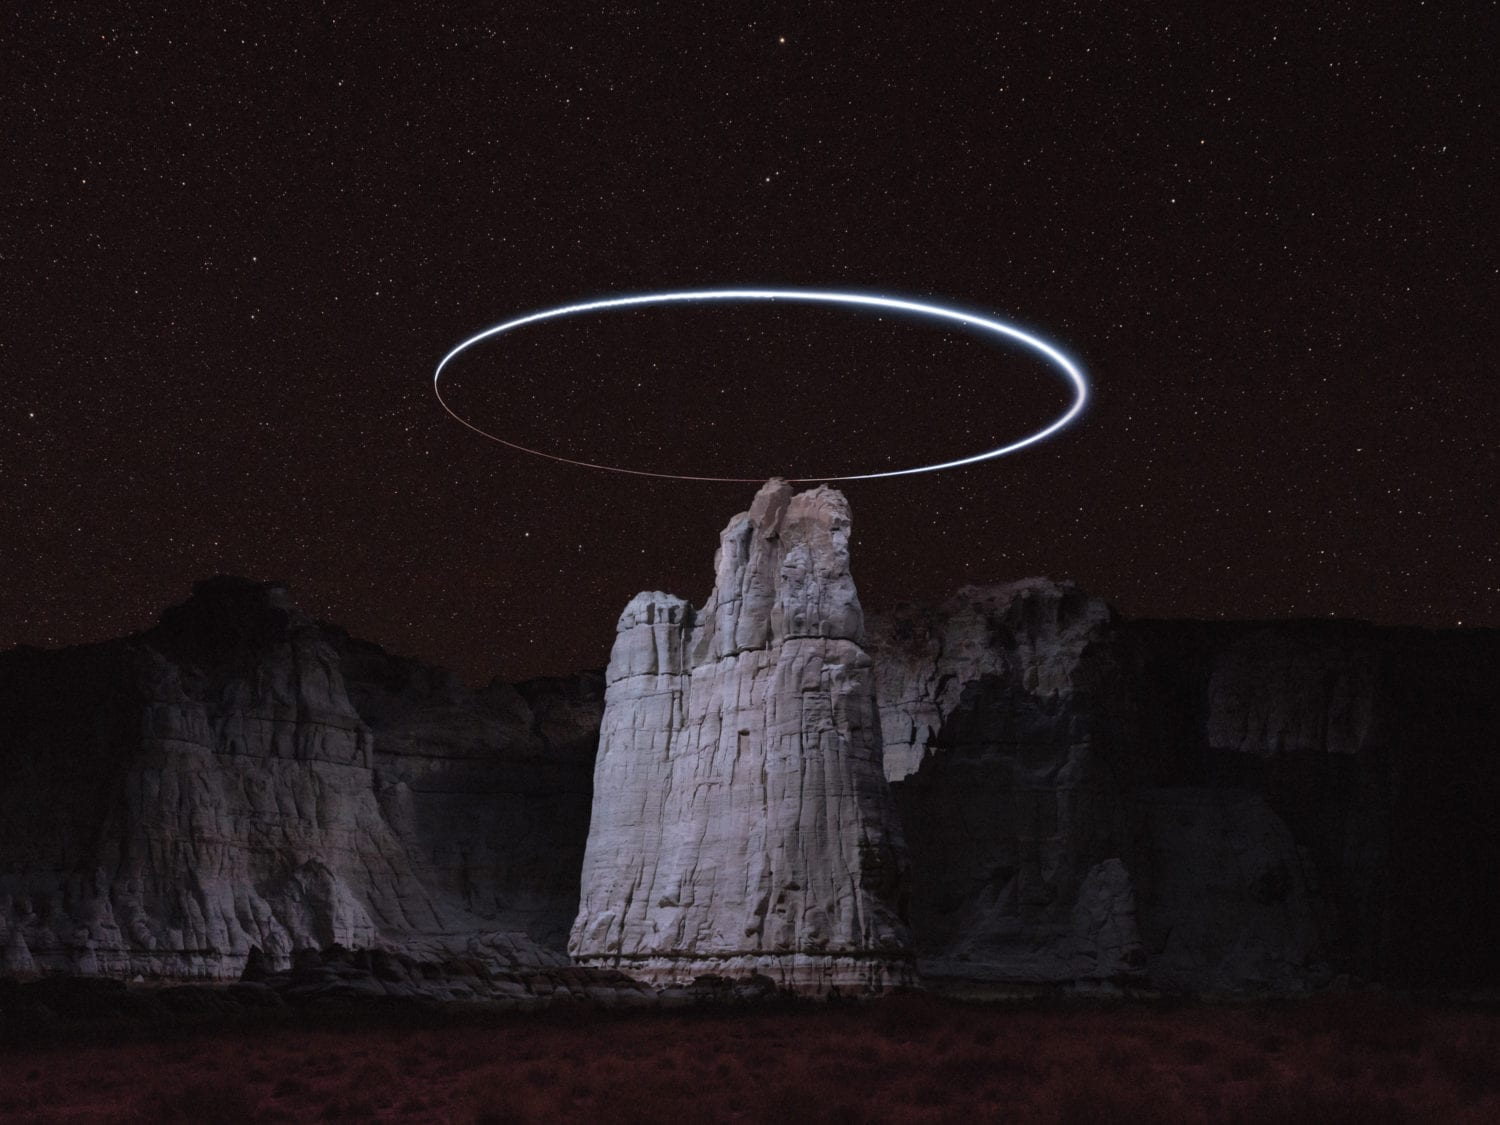 Reuben Wu Captures Light Paths With Drones Above Natural Landscapes Yellowtrace 21